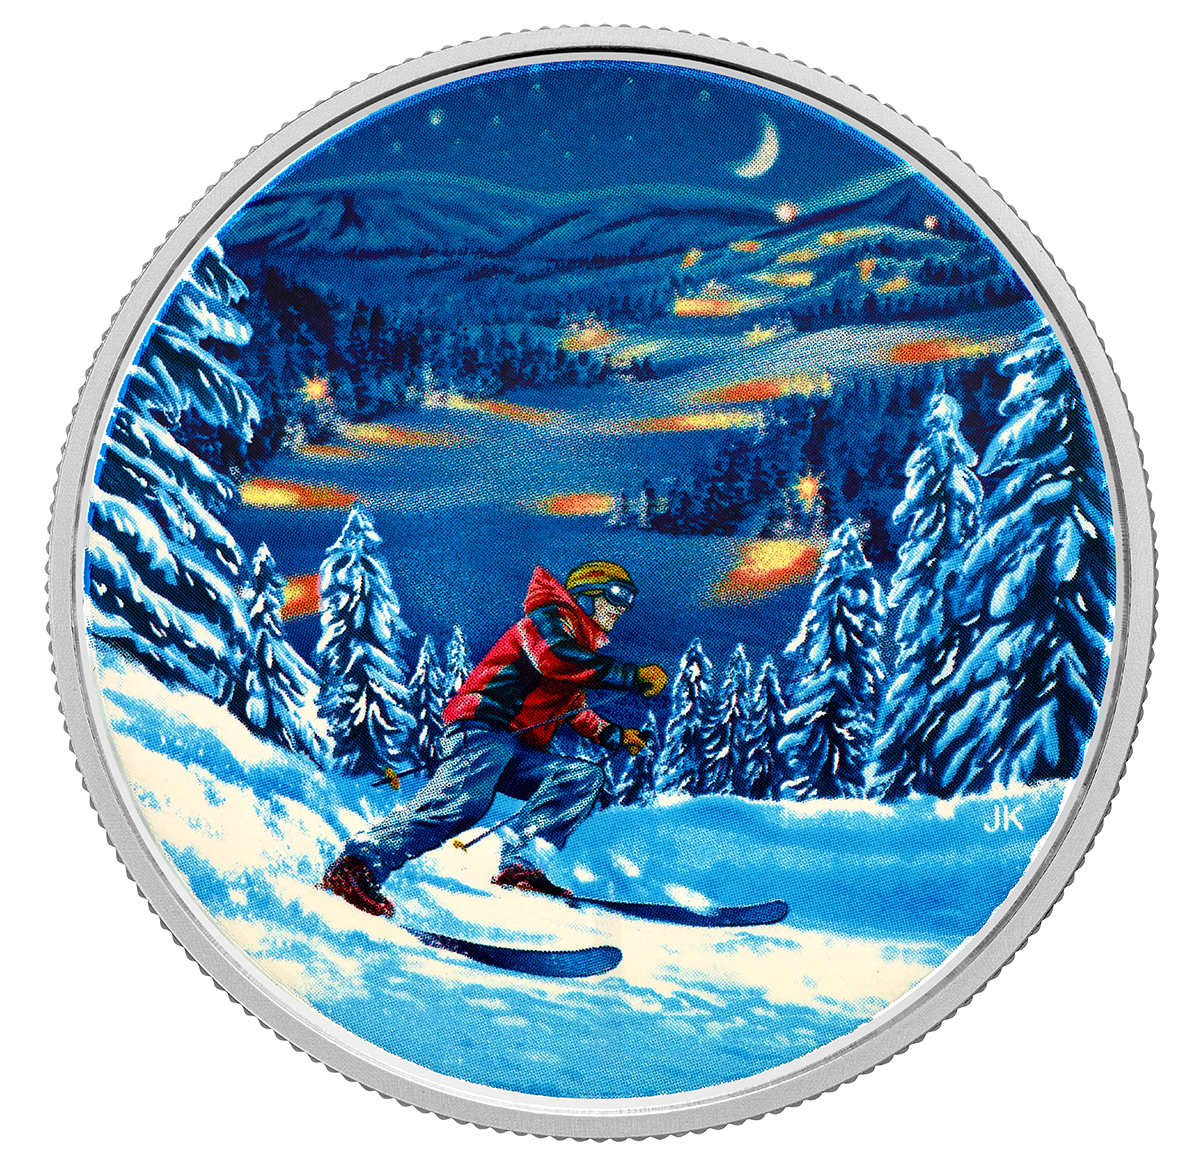 2017 23 17 Gram Canada Great Canada Outdoors Night Skiing